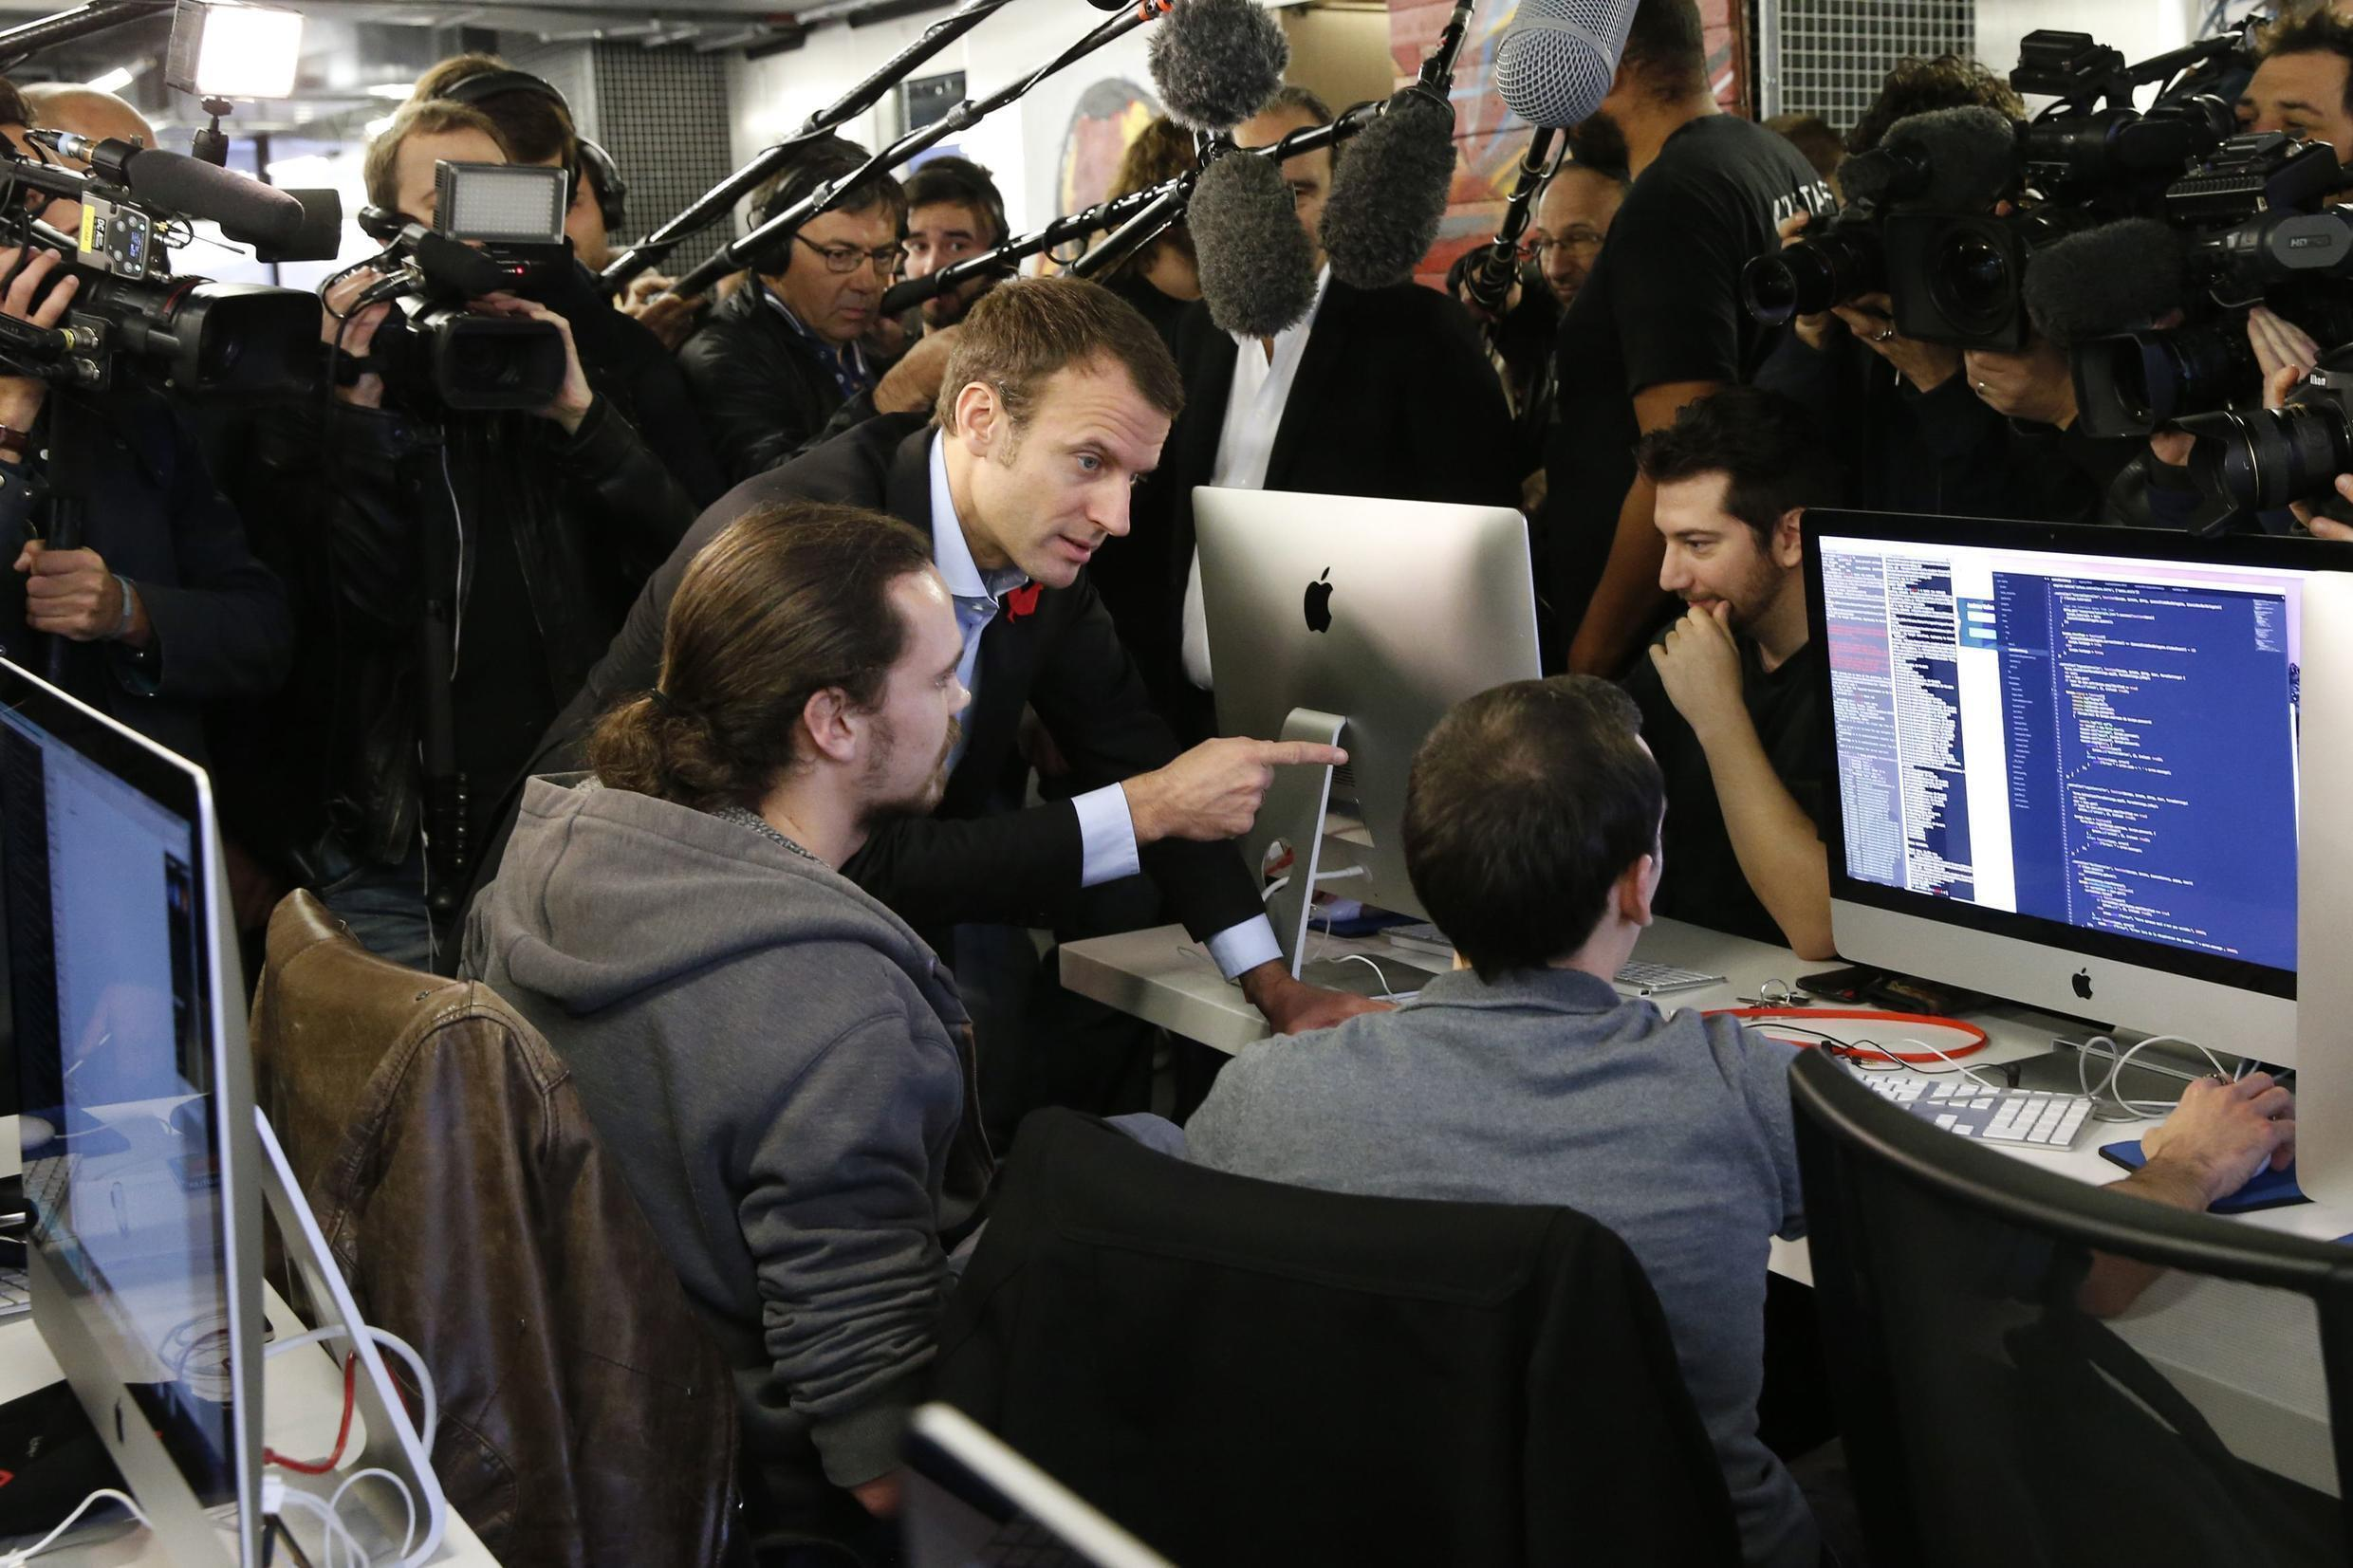 Emmanuel Macron, here when he was Economy minister, with students during a visit to the Ecole 42 free computer programming school Paris in October 2015.